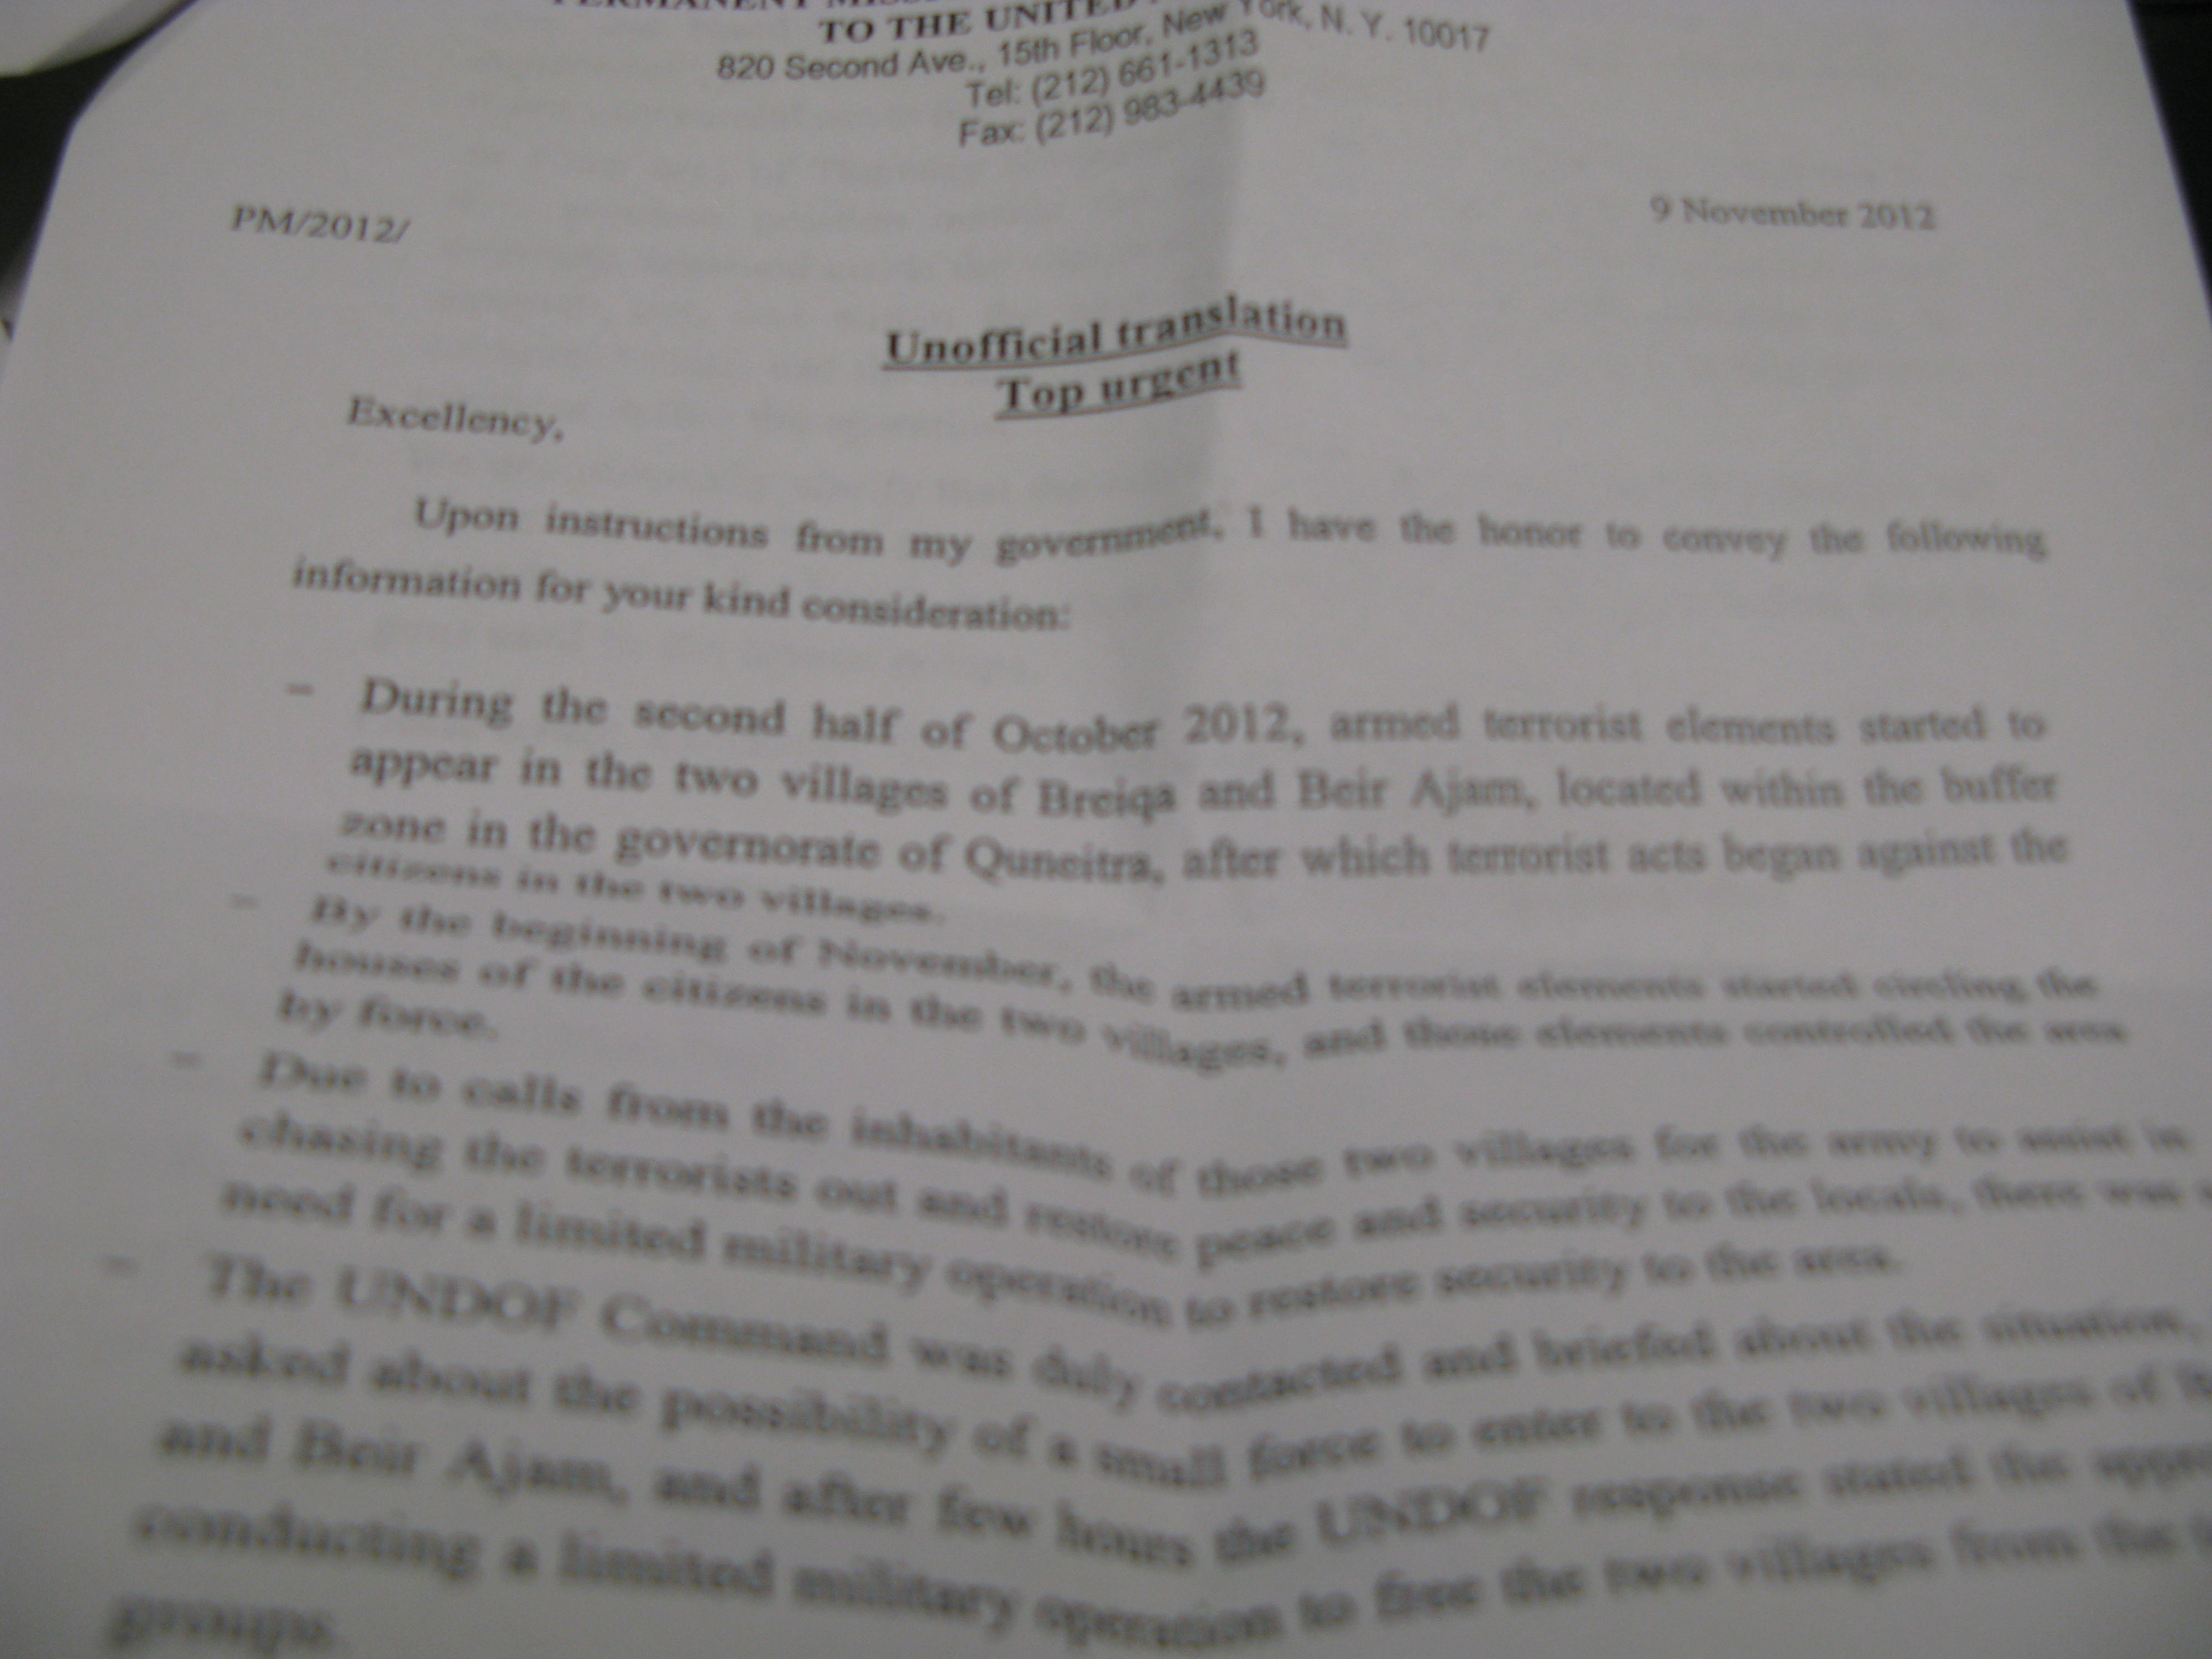 syrias letter top urgent photo by mrlee - Cover Letter United Nations